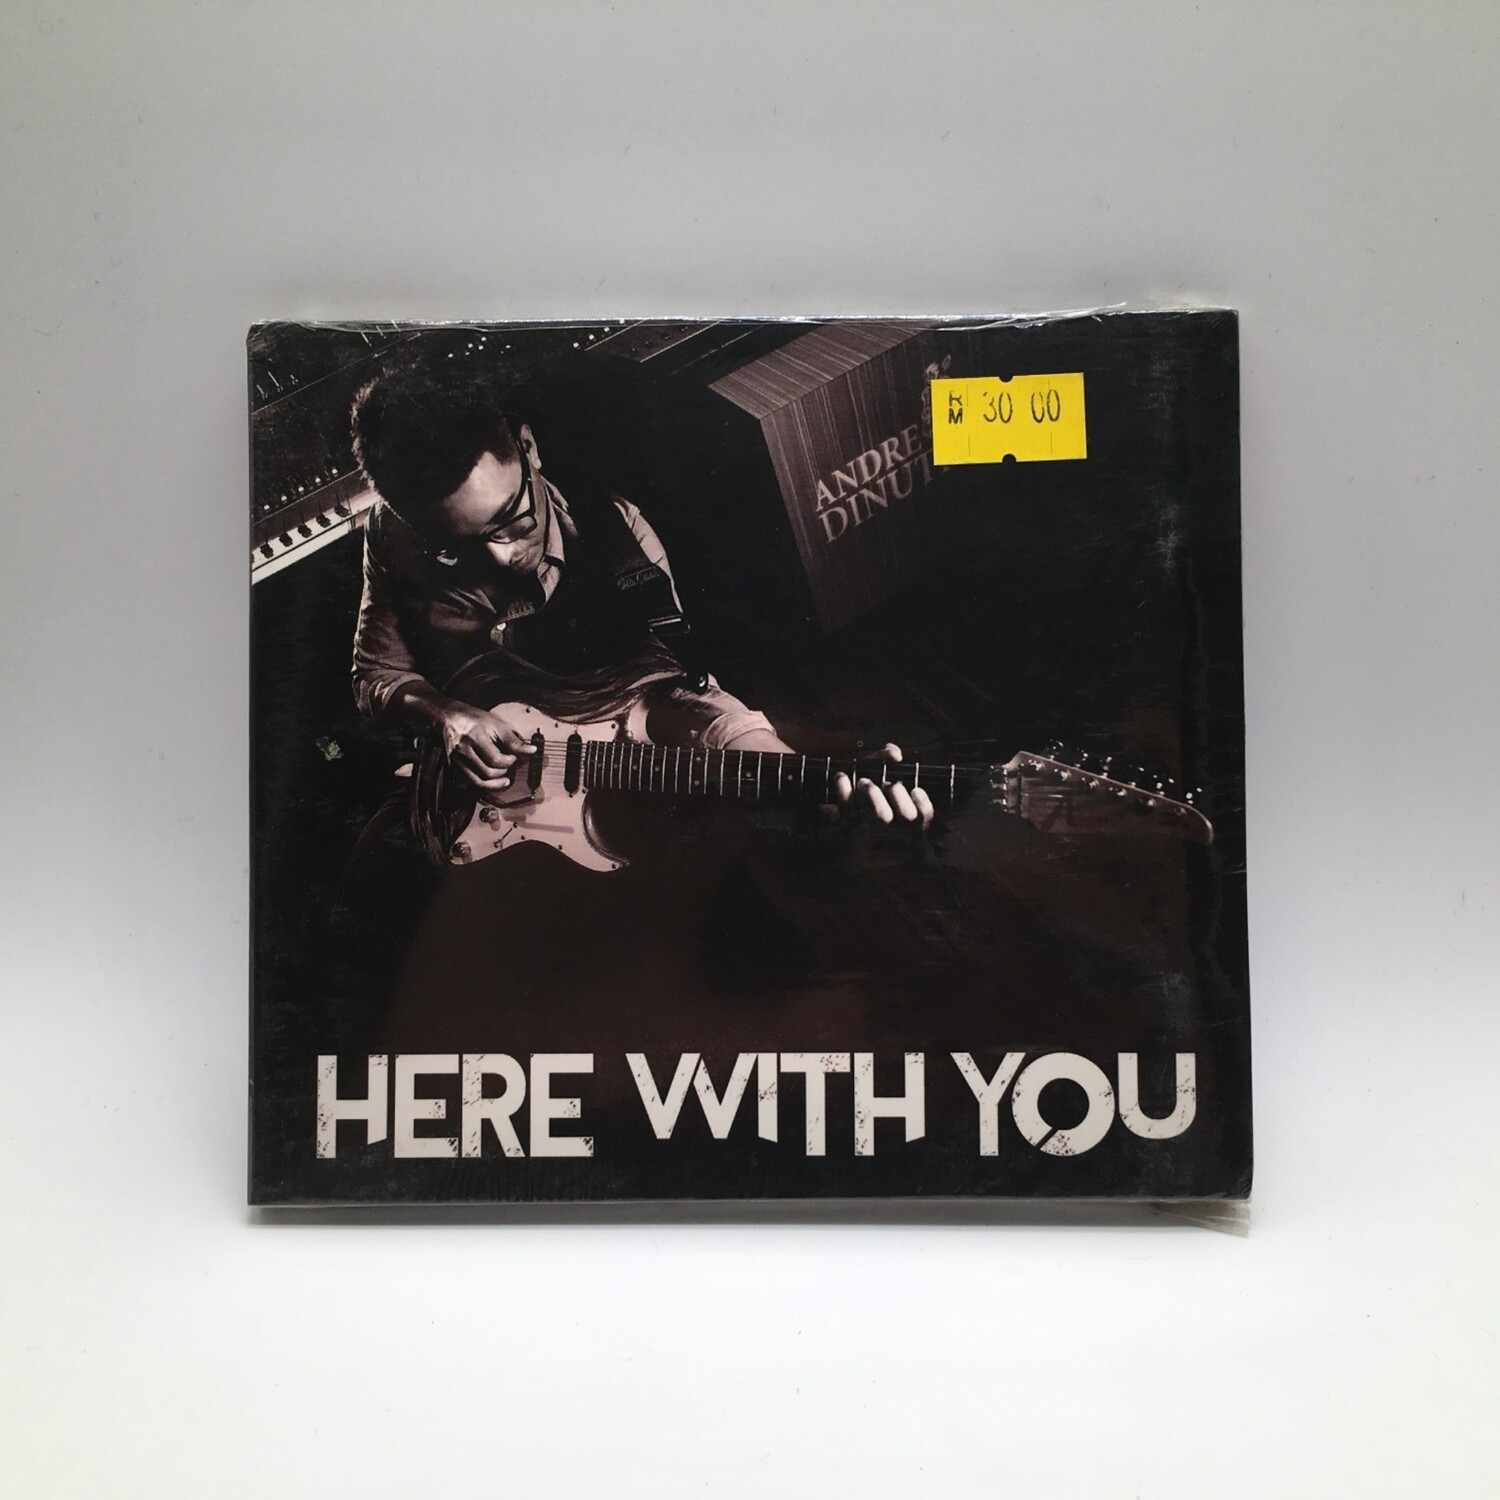 ANDRE DINUTH -HERE AFTER YOU- CD